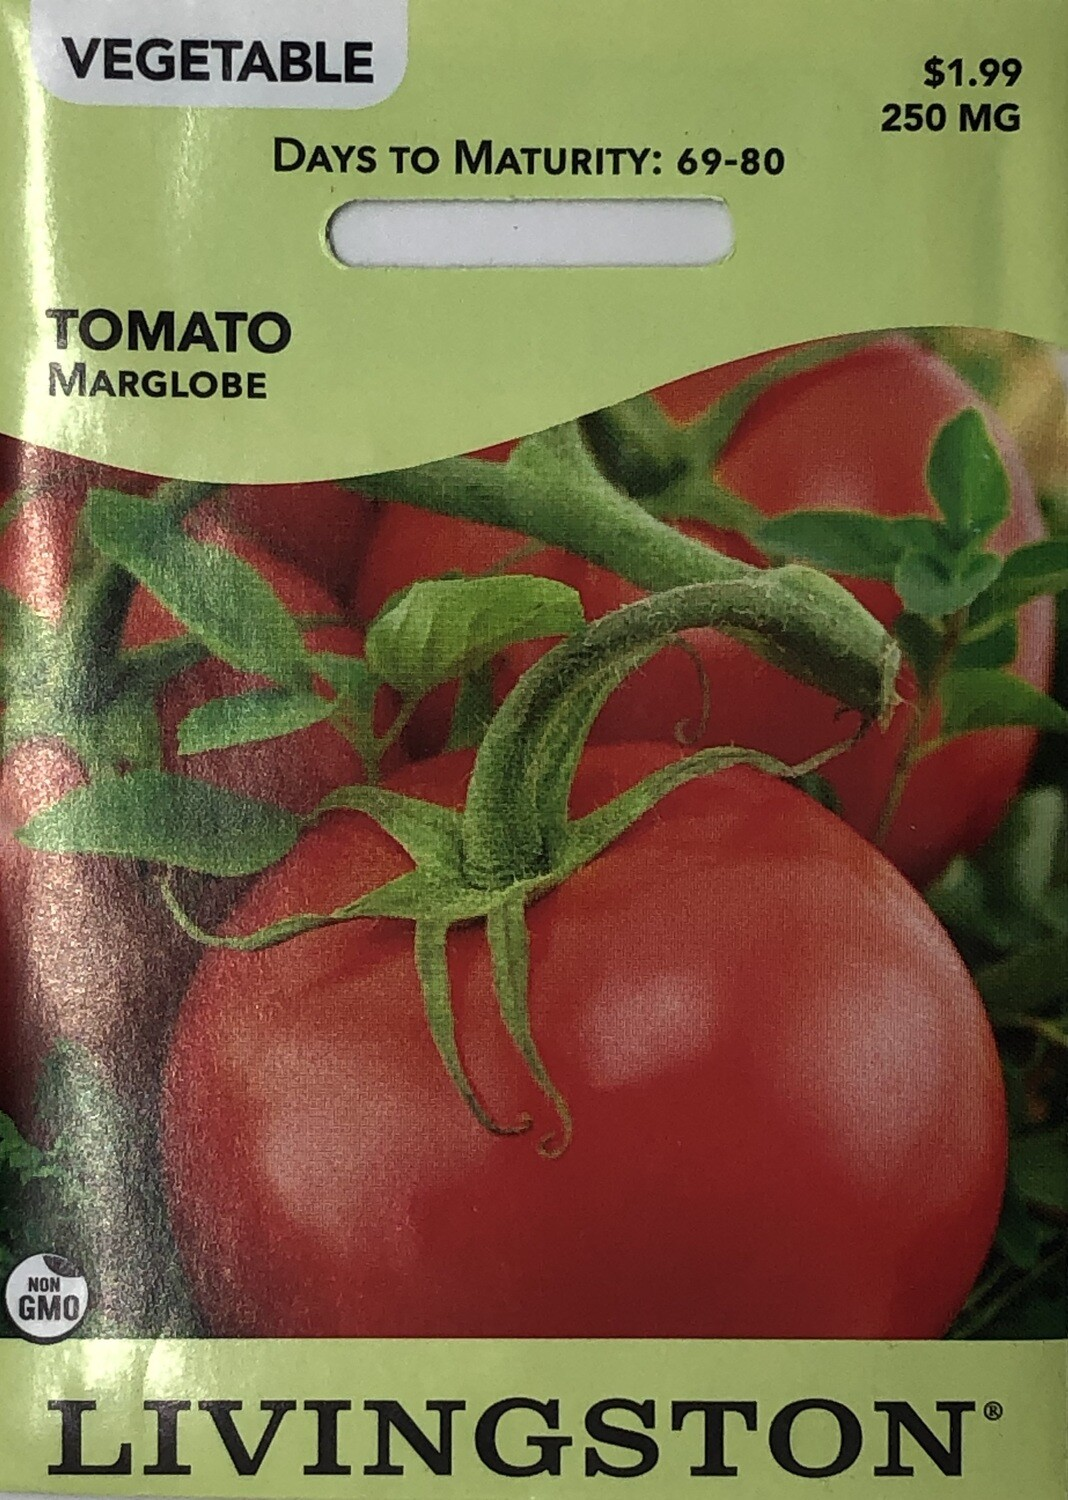 TOMATO - HEIRLOOM - MARGLOBE